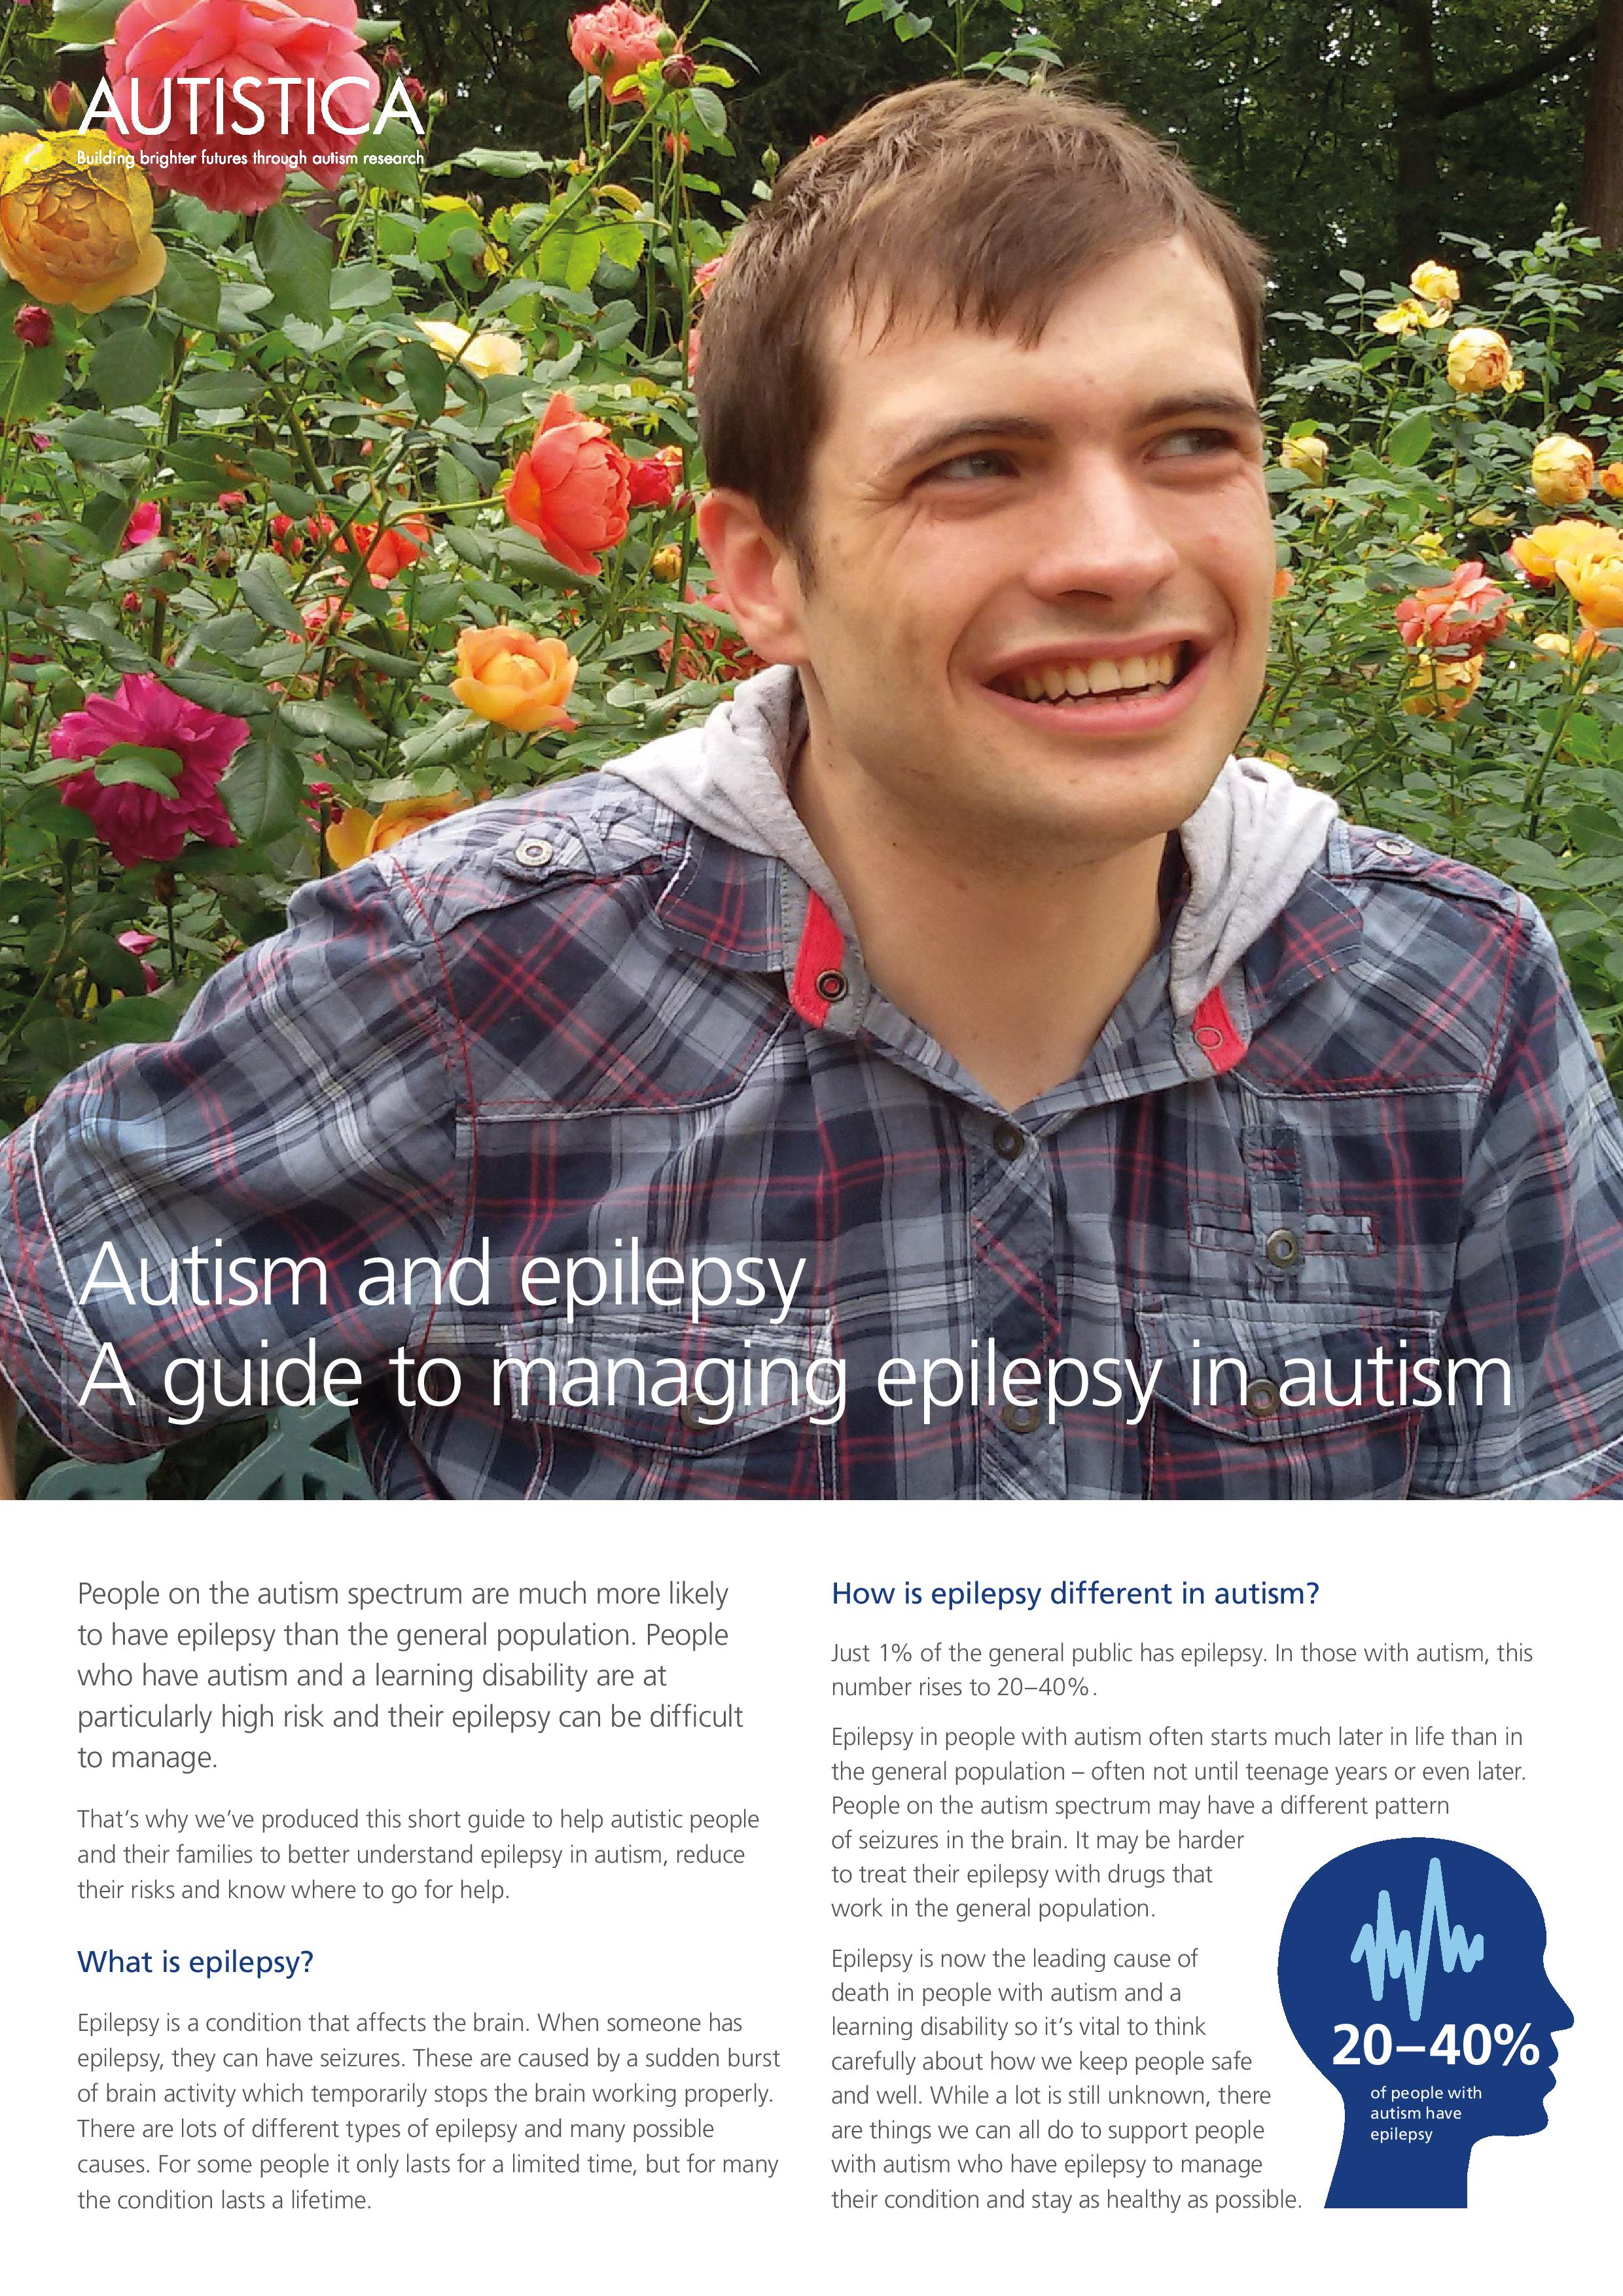 Autism and epilepsy A guide to managing epilepsy in autism